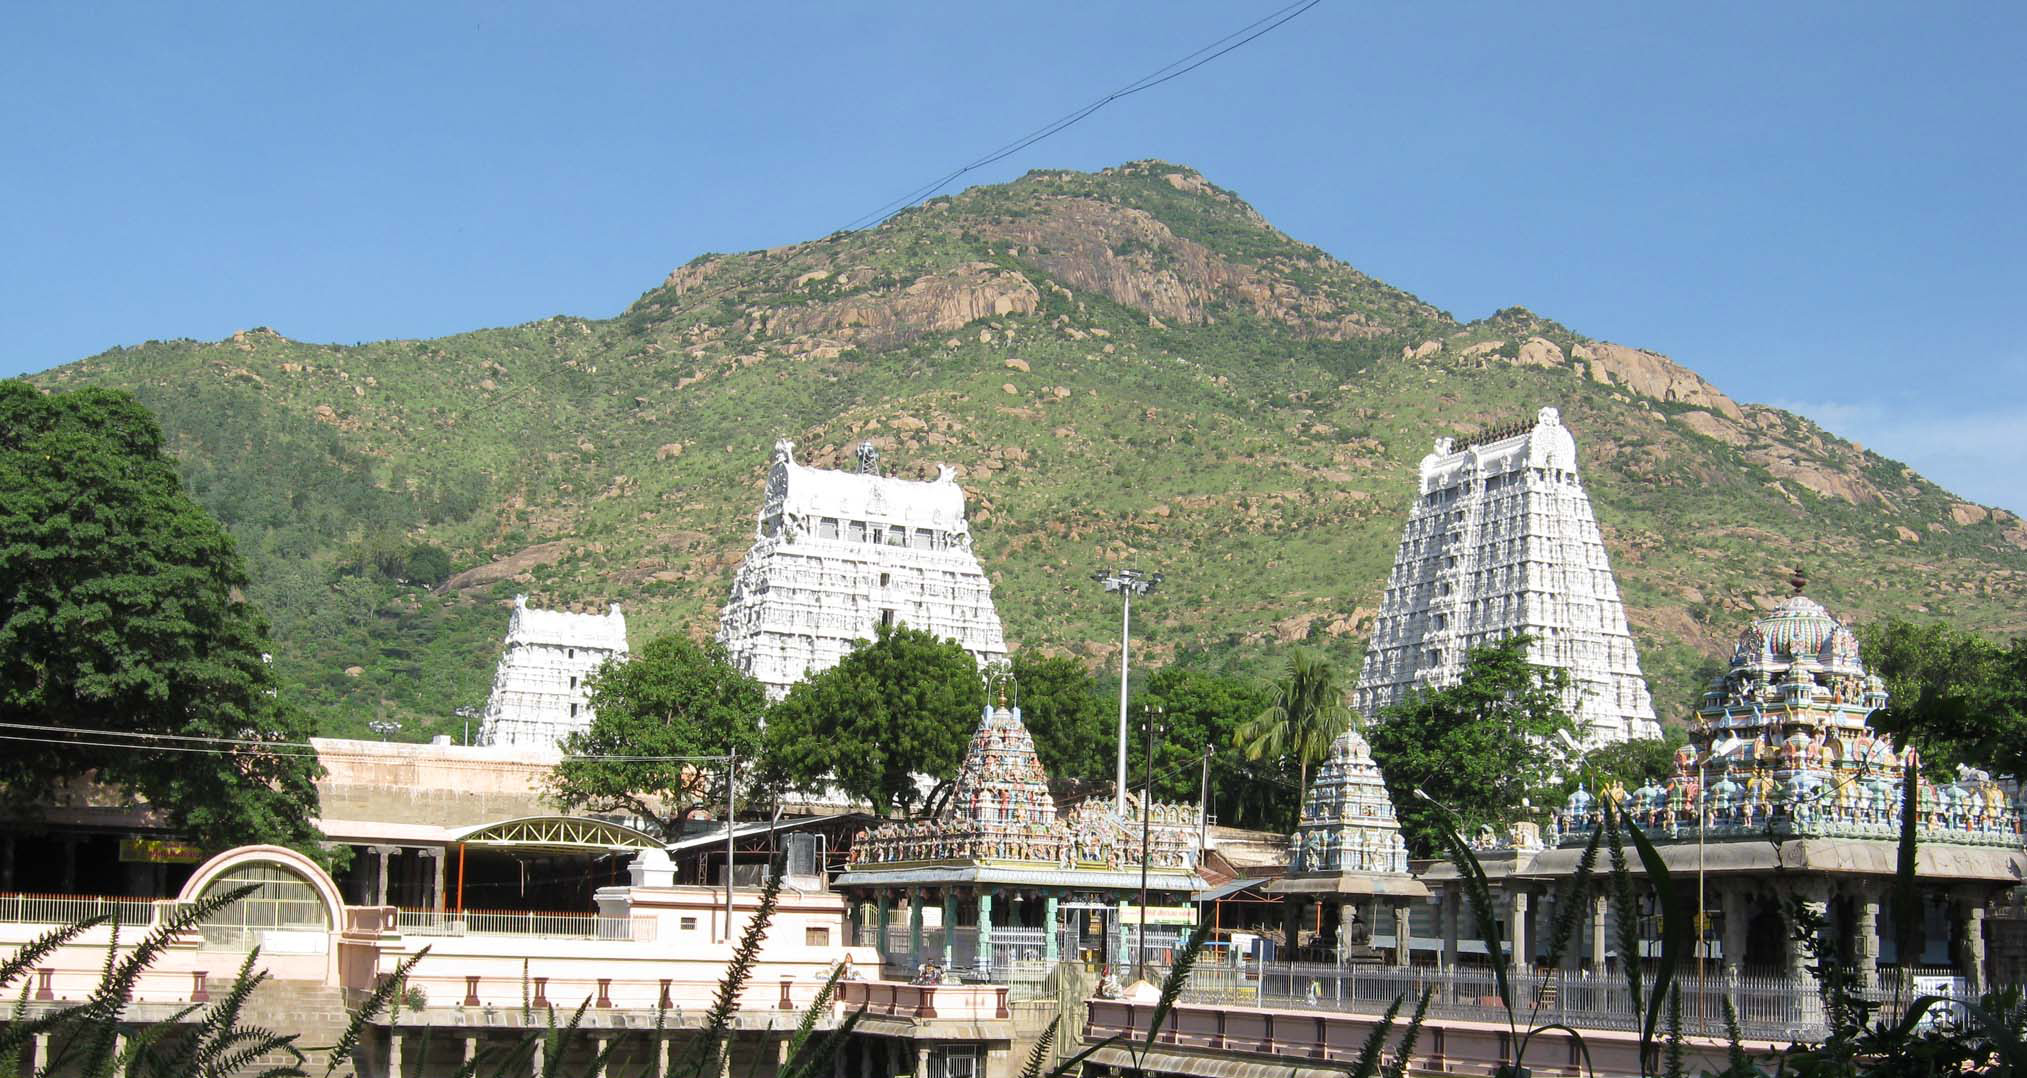 Arunachala Hill and Temple